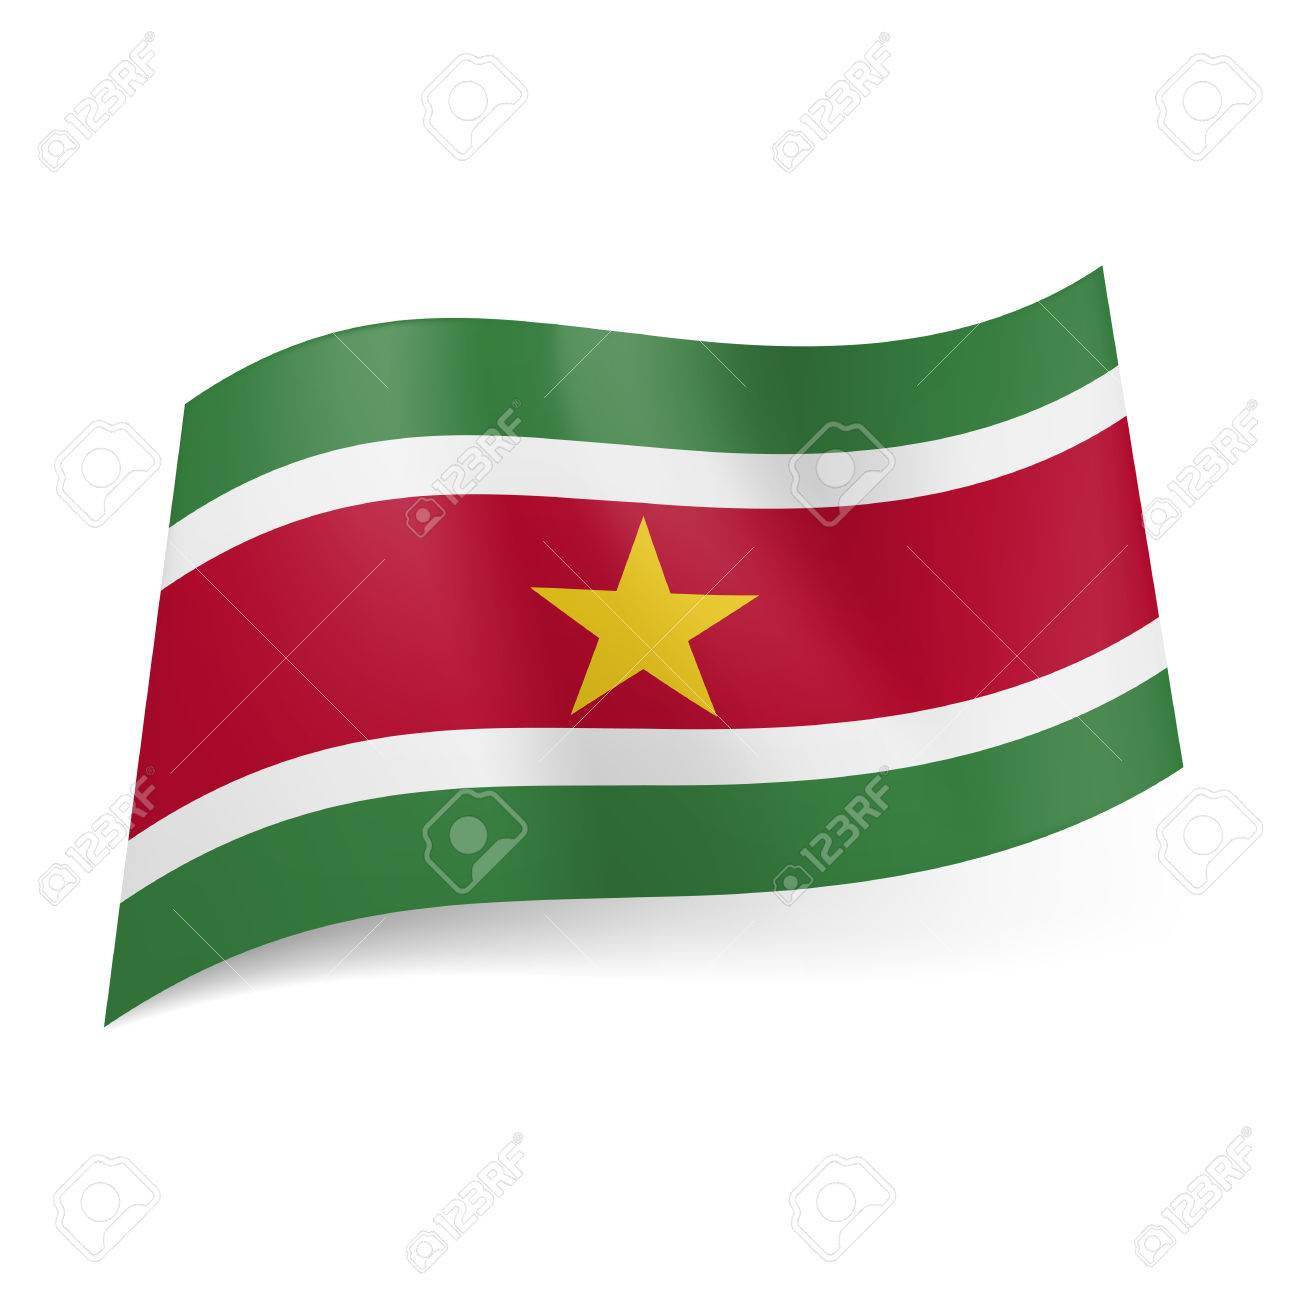 National Flag Of Suriname Red Stripe With Golden Star Between